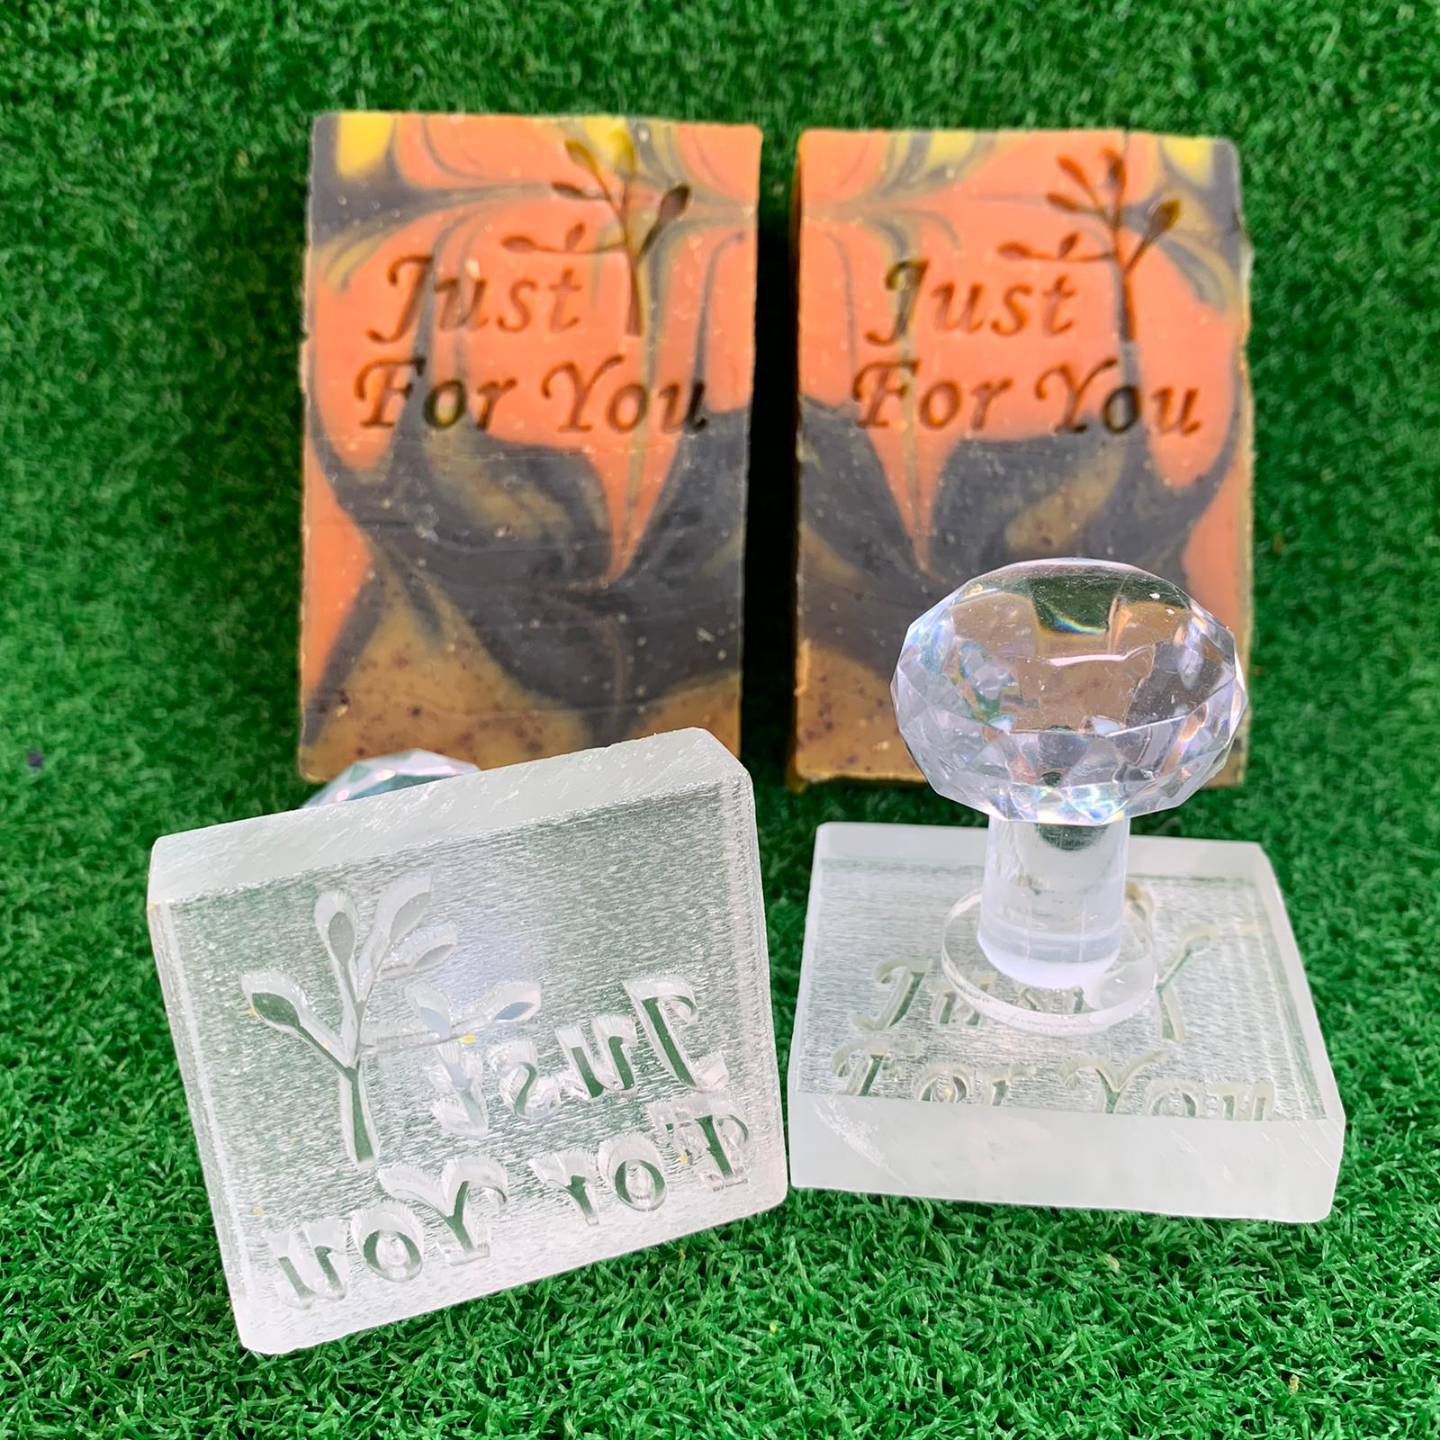 Just For You Acrylic Soap Stamp